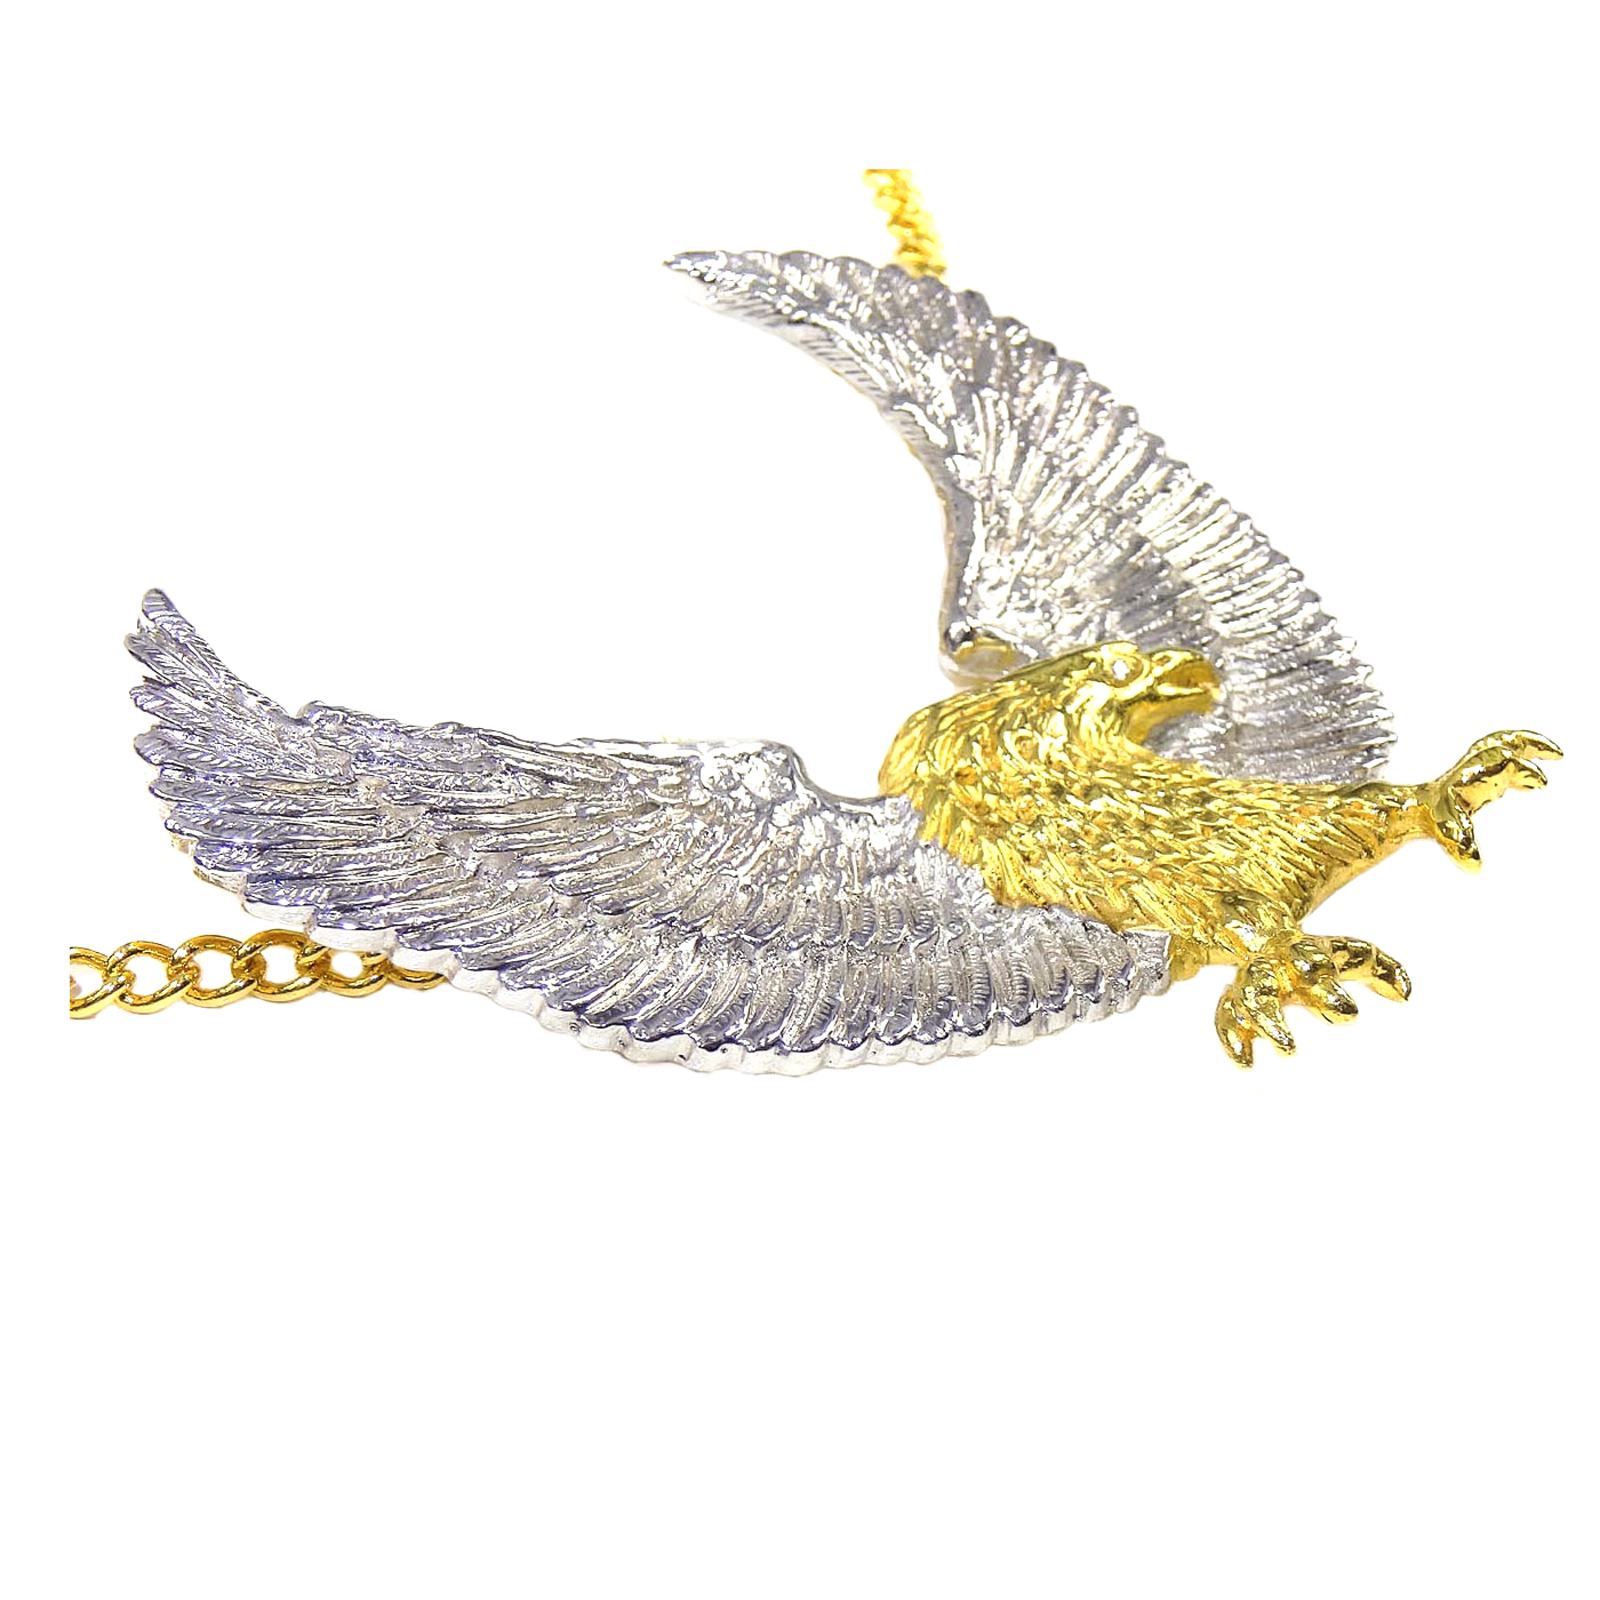 pin gold pendant eagle solid american on sold yellow amazon